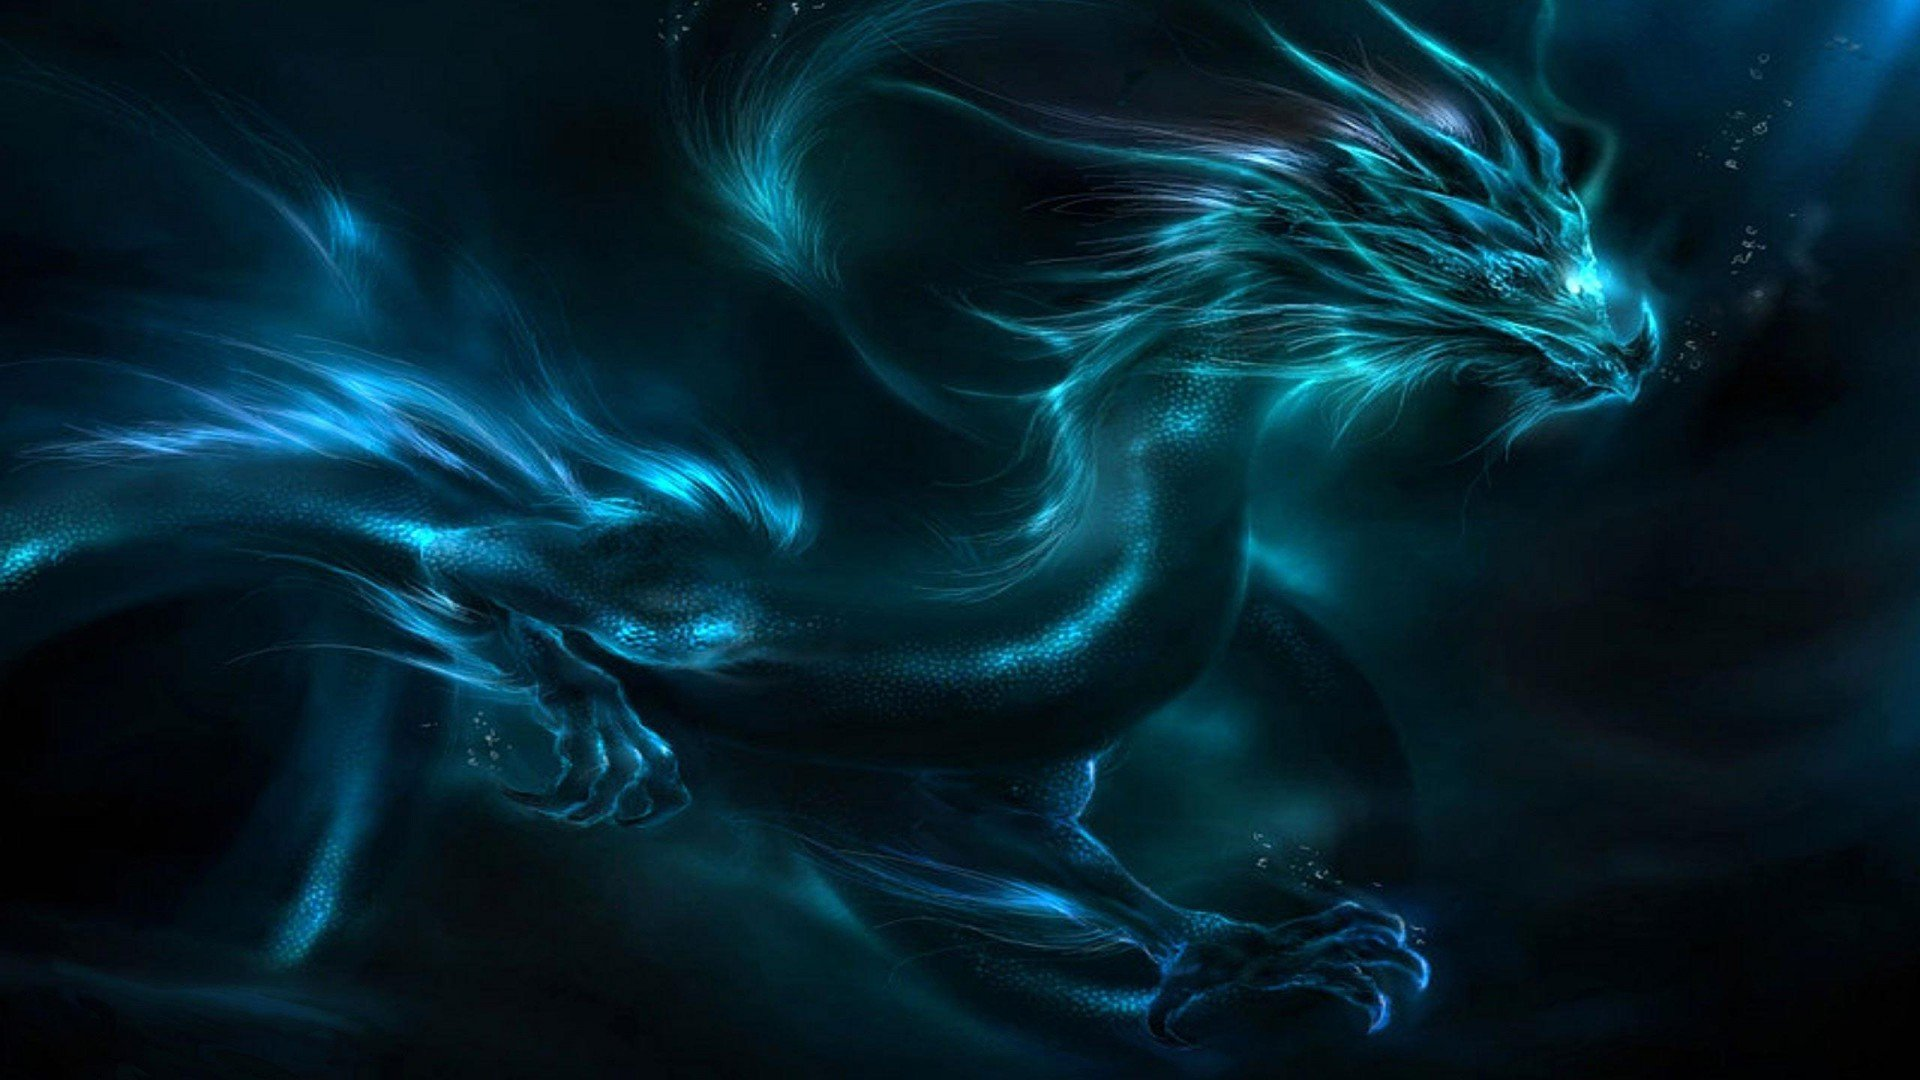 Full Fantasy Blue Dragon Wallpaper 1920x1080 Full HD Wallpapers 1920x1080